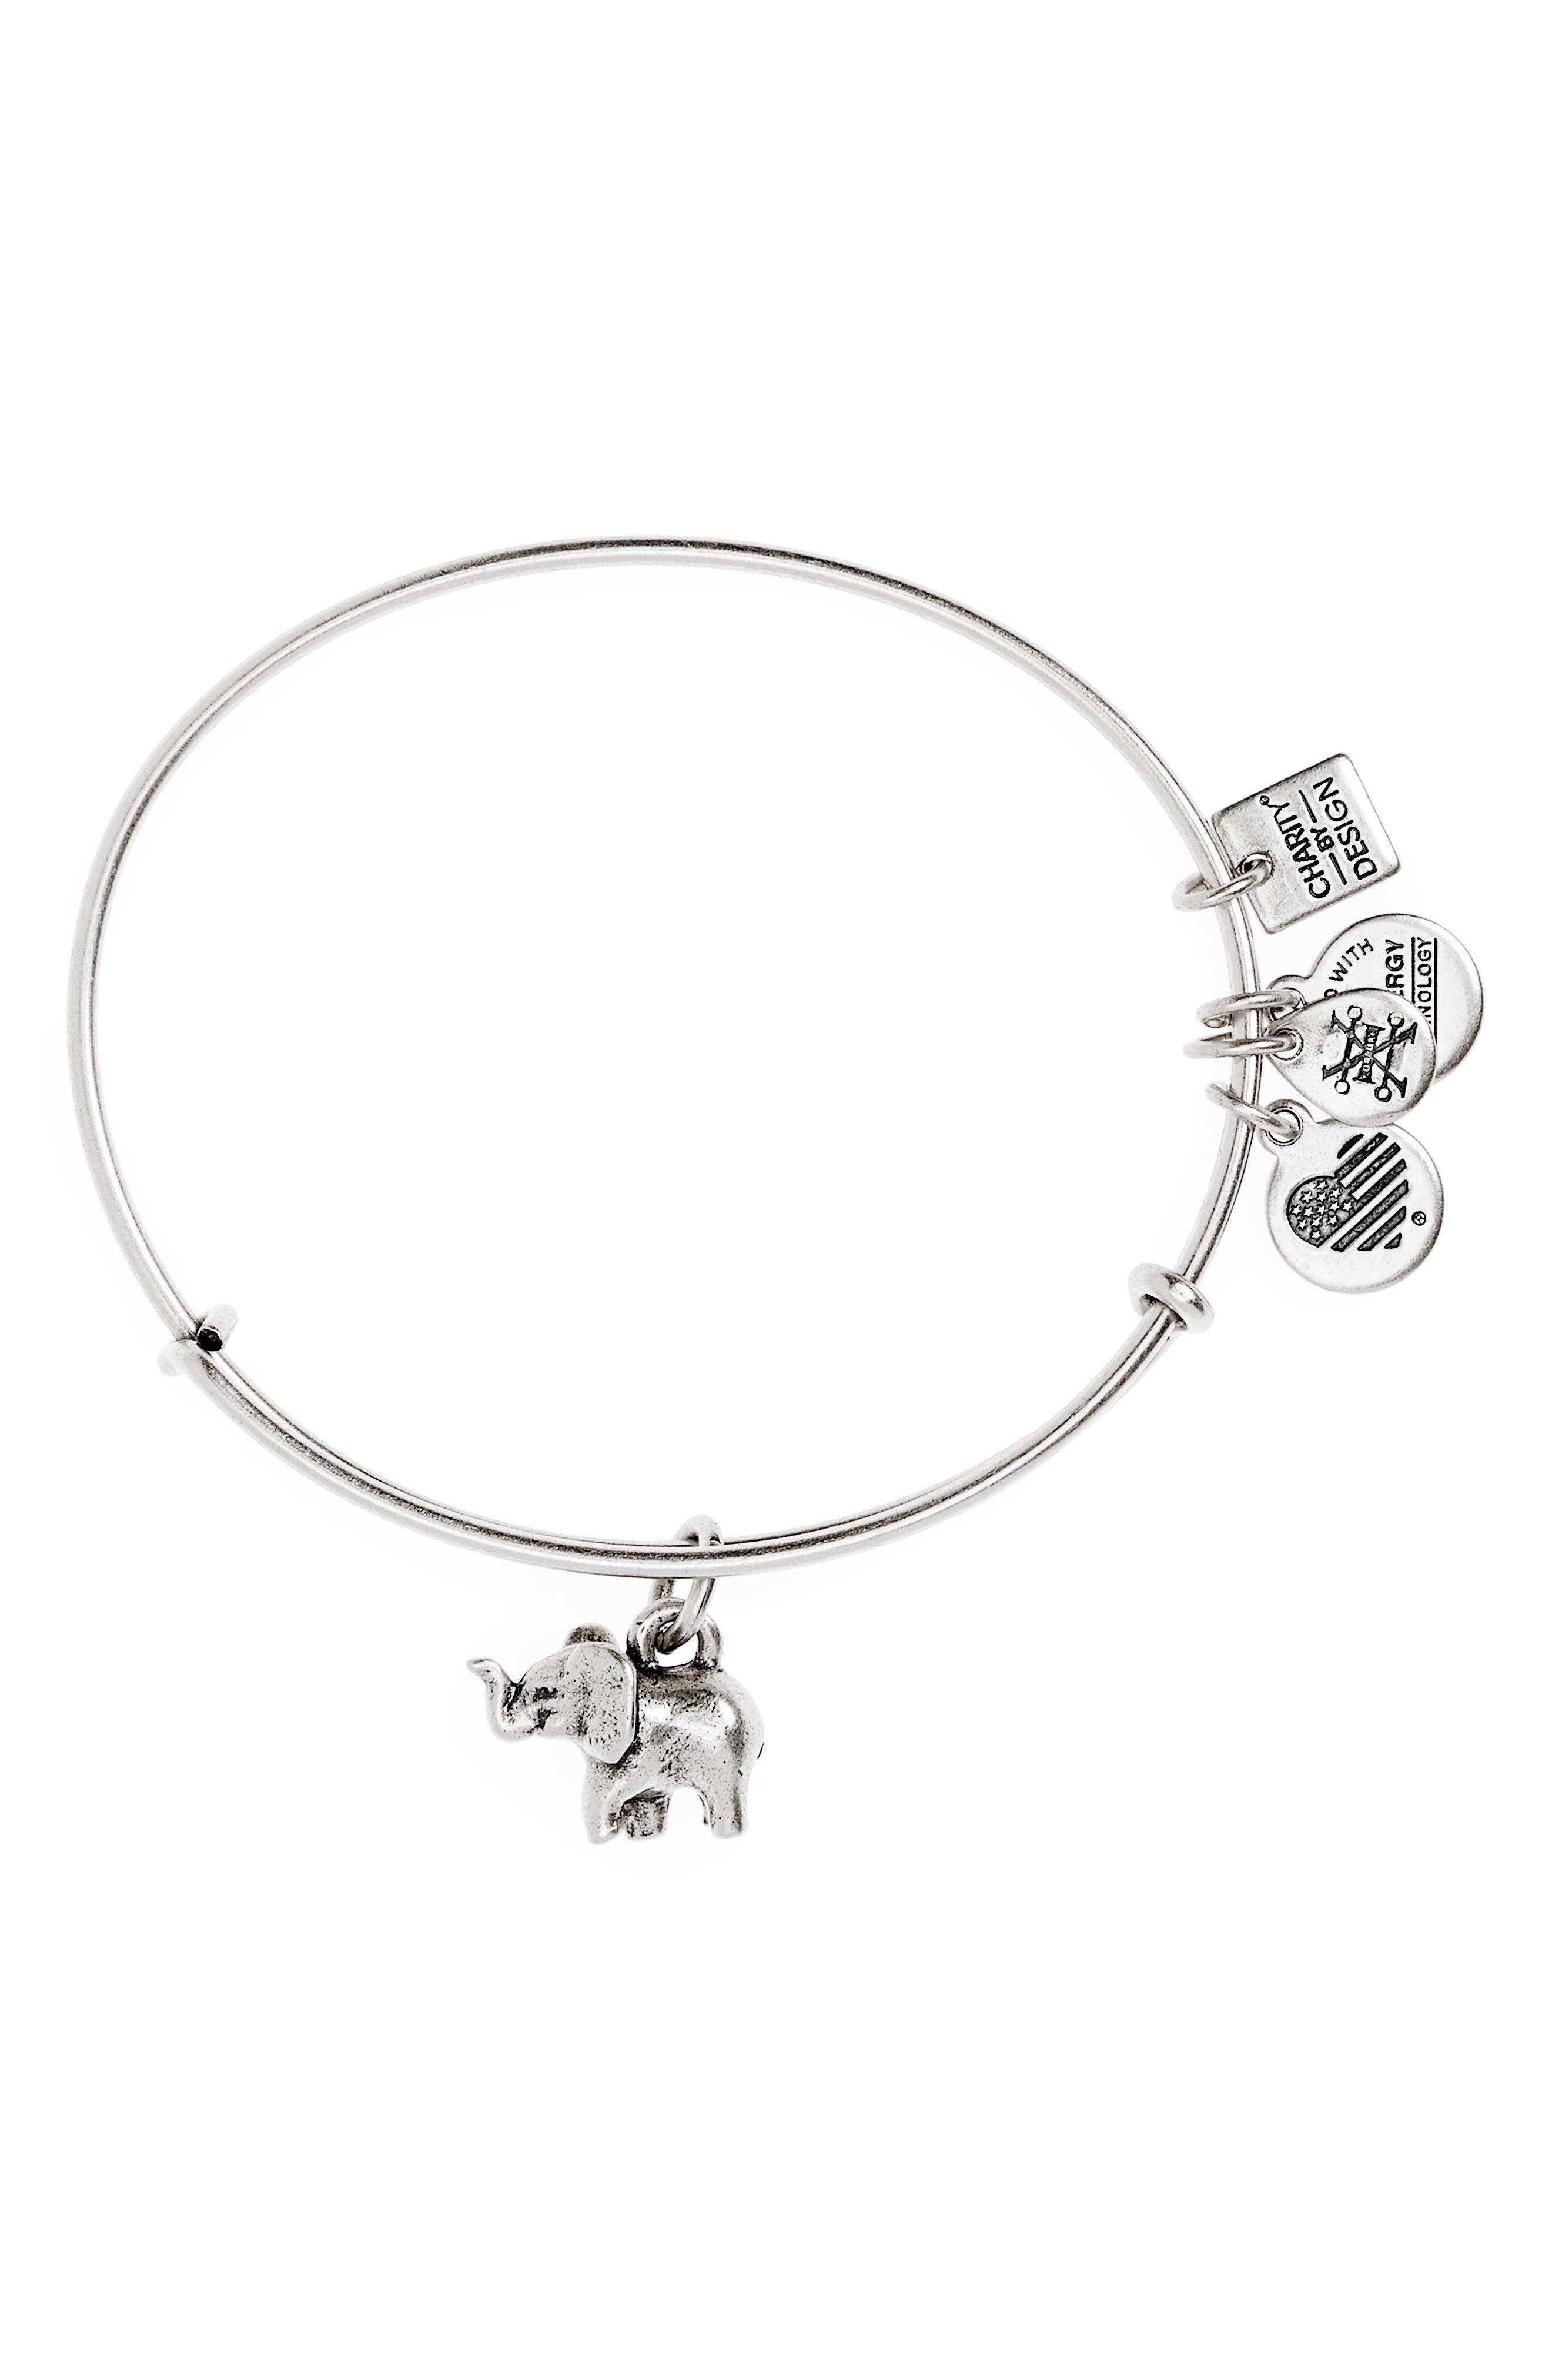 Charity by Design Elephant II Adjustable Bangle,                             Main thumbnail 1, color,                             Silver